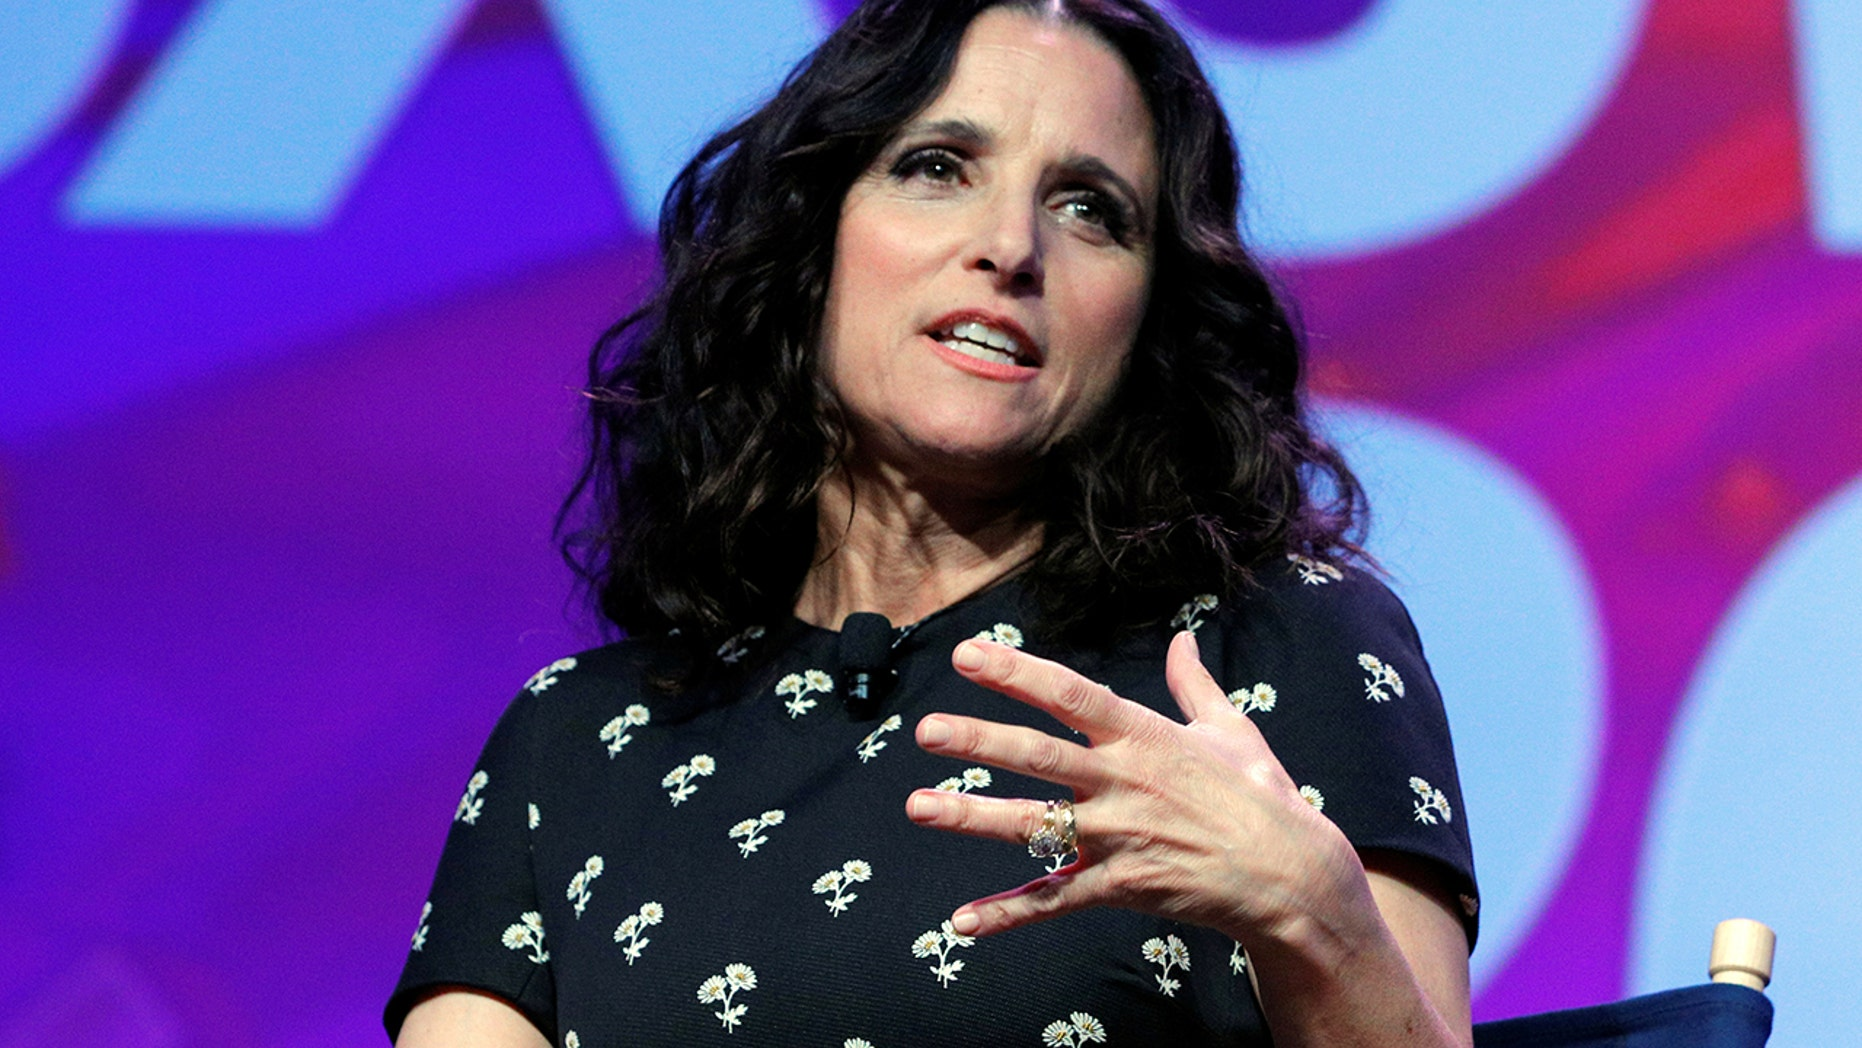 Julia Louis-Dreyfus Announces She's Cancer Free